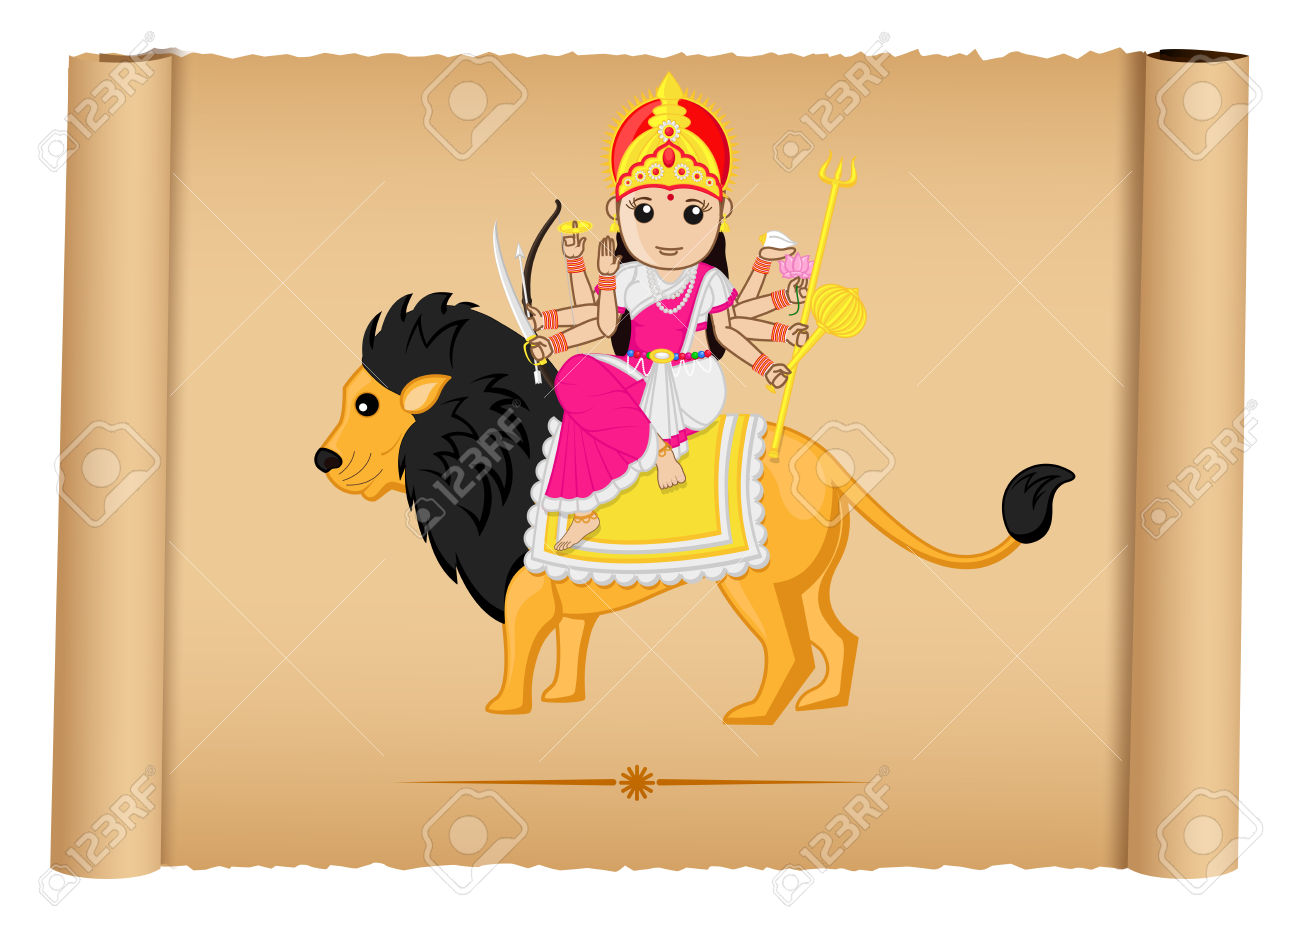 Hindu Goddess Maa Durga Illustration Royalty Free Cliparts.